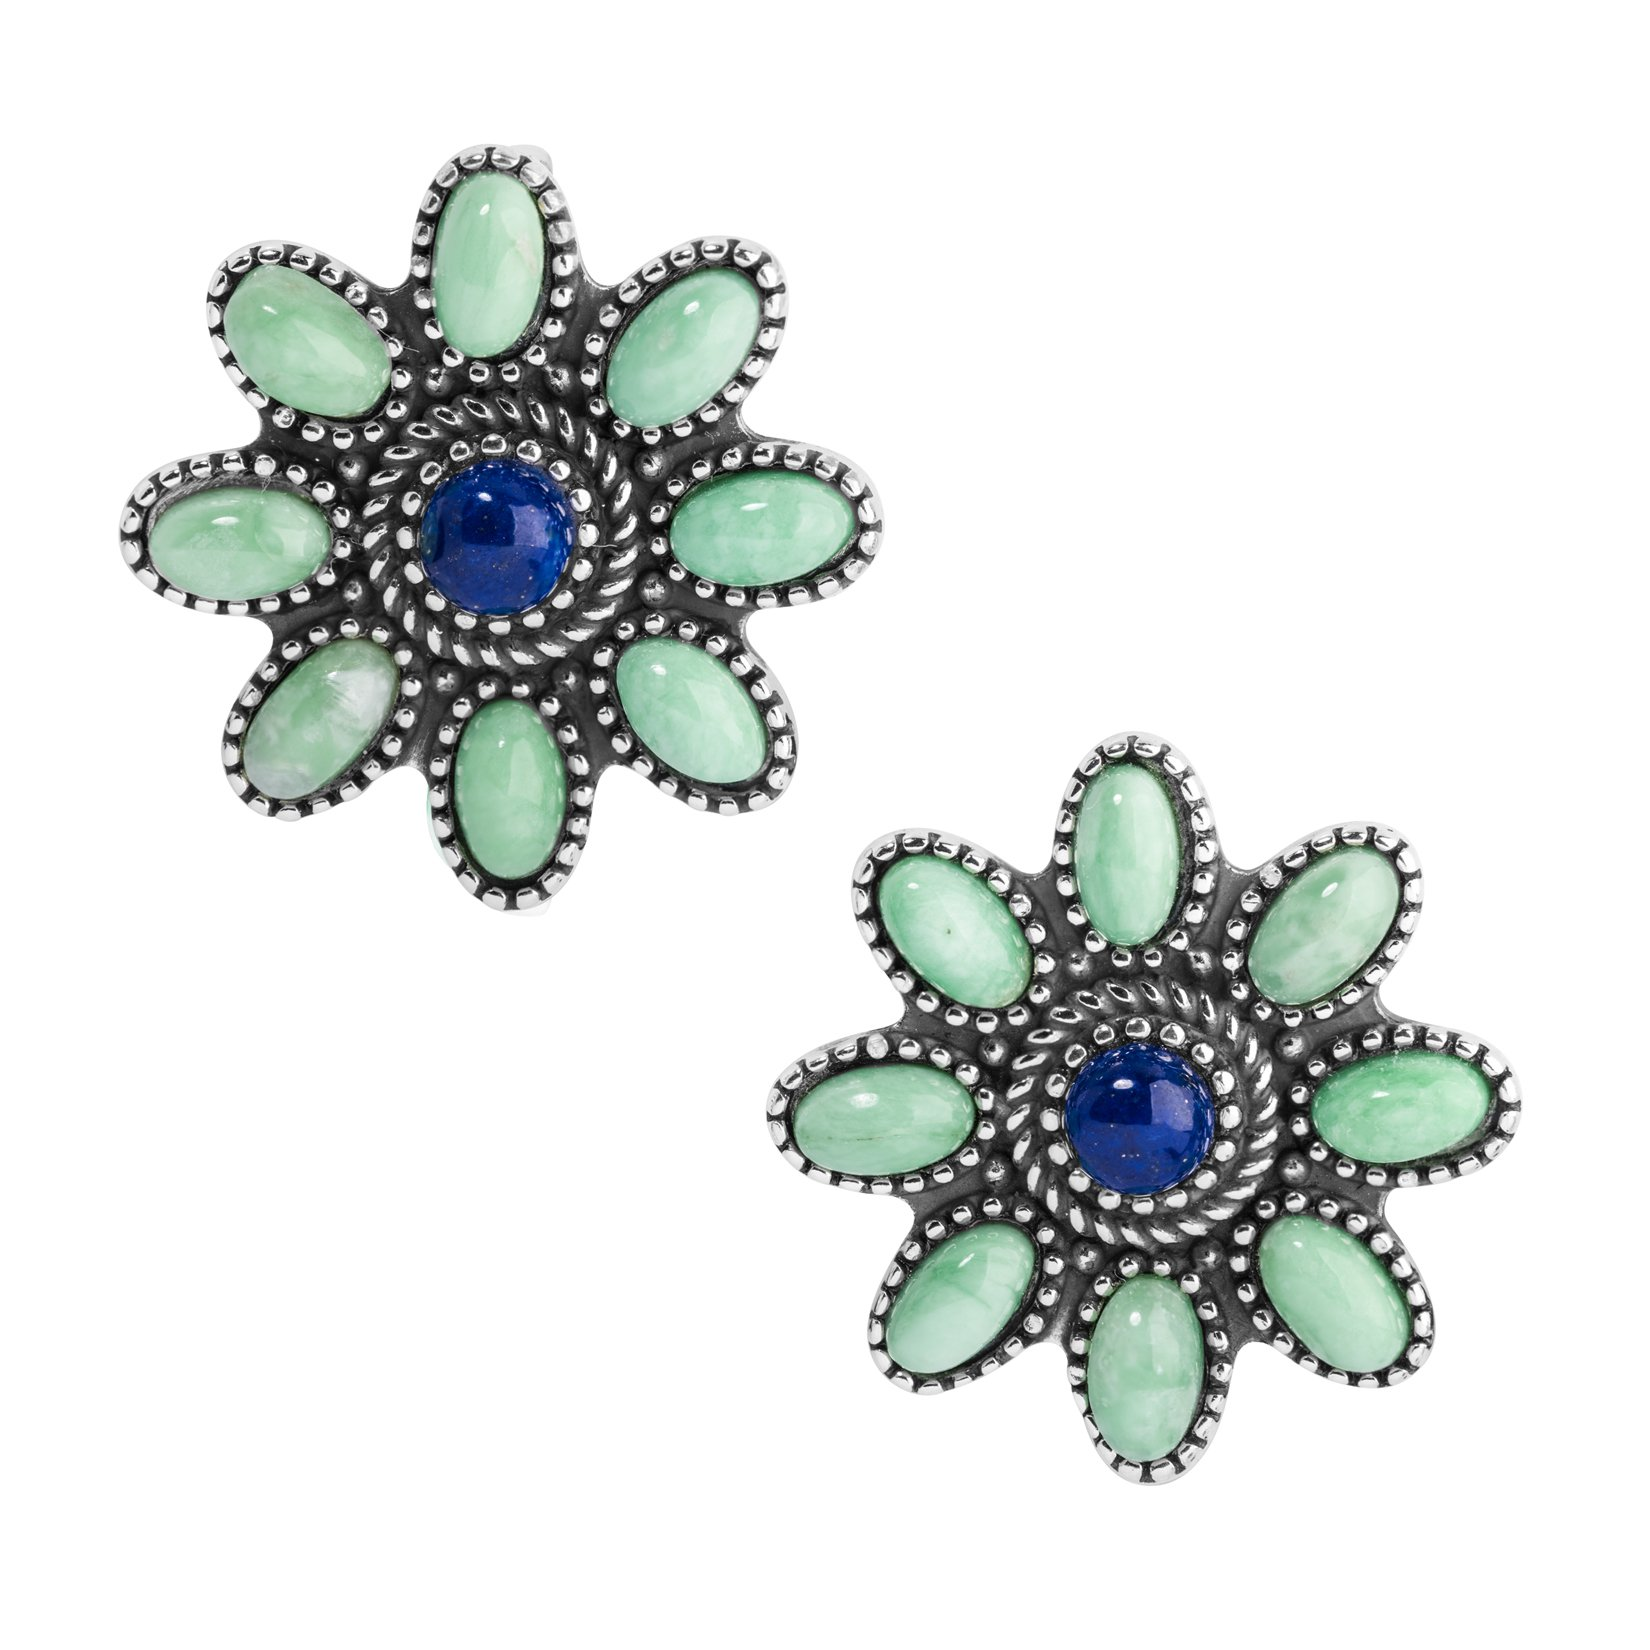 Sterling Silver, Variscite, & Lapis Clip Flower Earrings